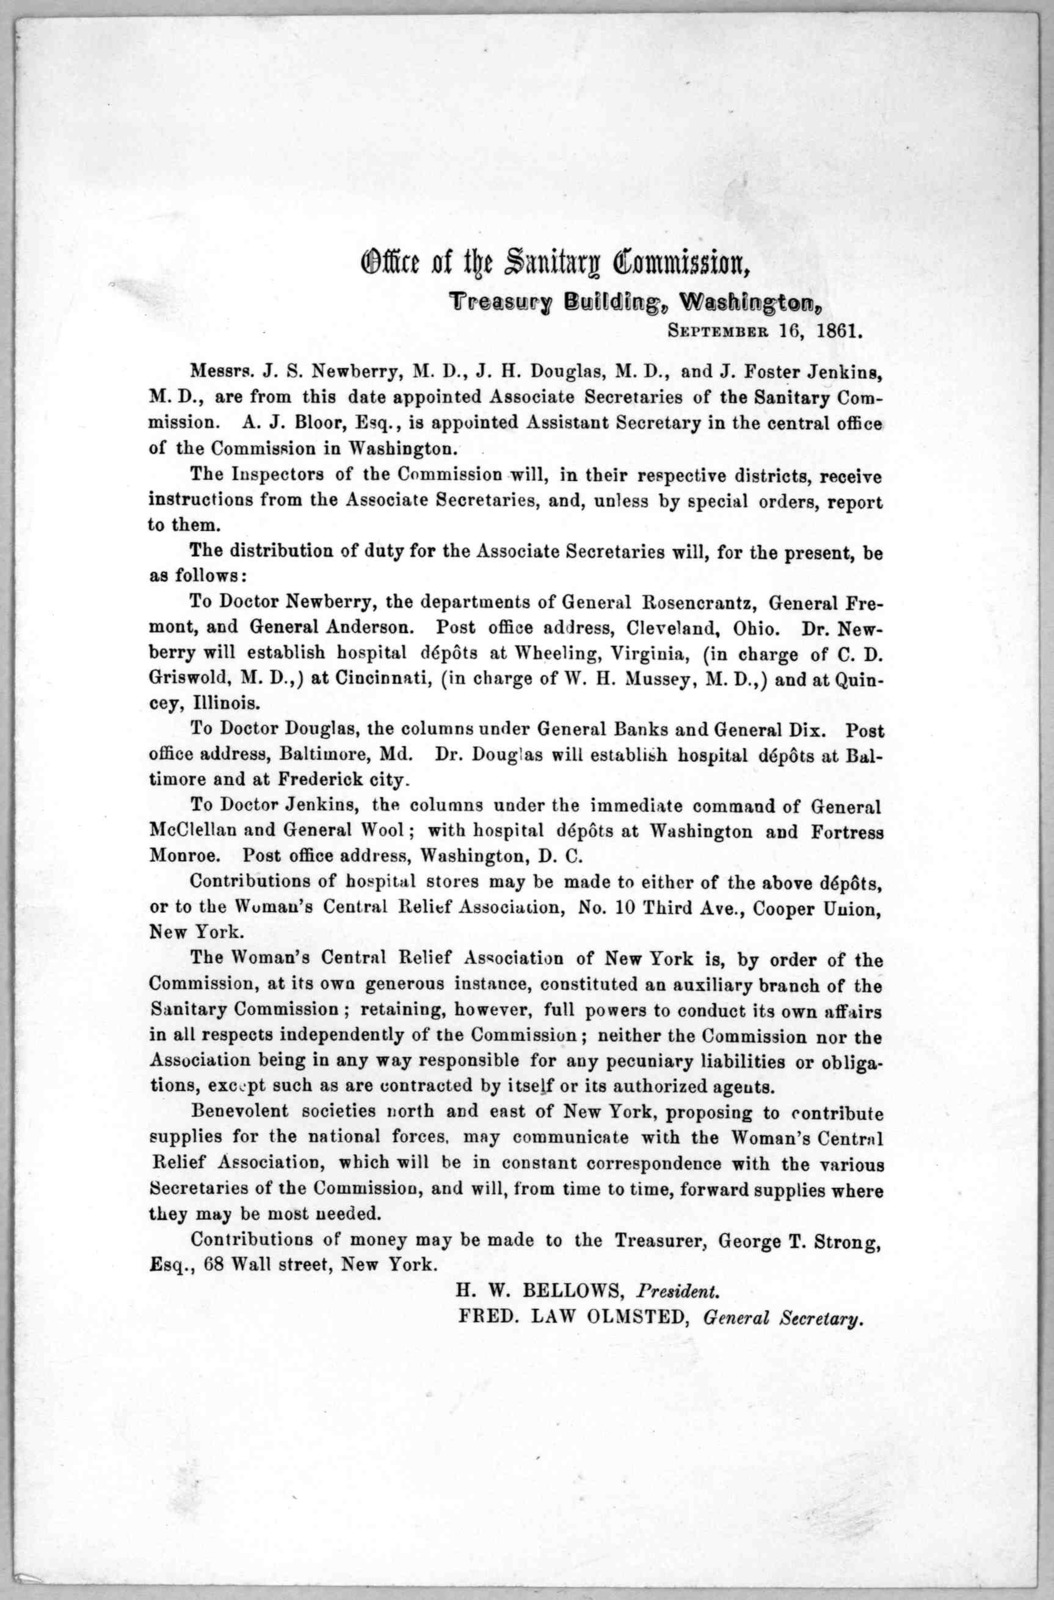 Office of the Sanitary commission, Treasury building. Washington, September 16, 1861. Messrs, J. S. Newberry M. D., J. H. Douglass, M. D., and J. Foster Jenkins M. D., are from this date appointed associate secretaryes of the Sanitary commission